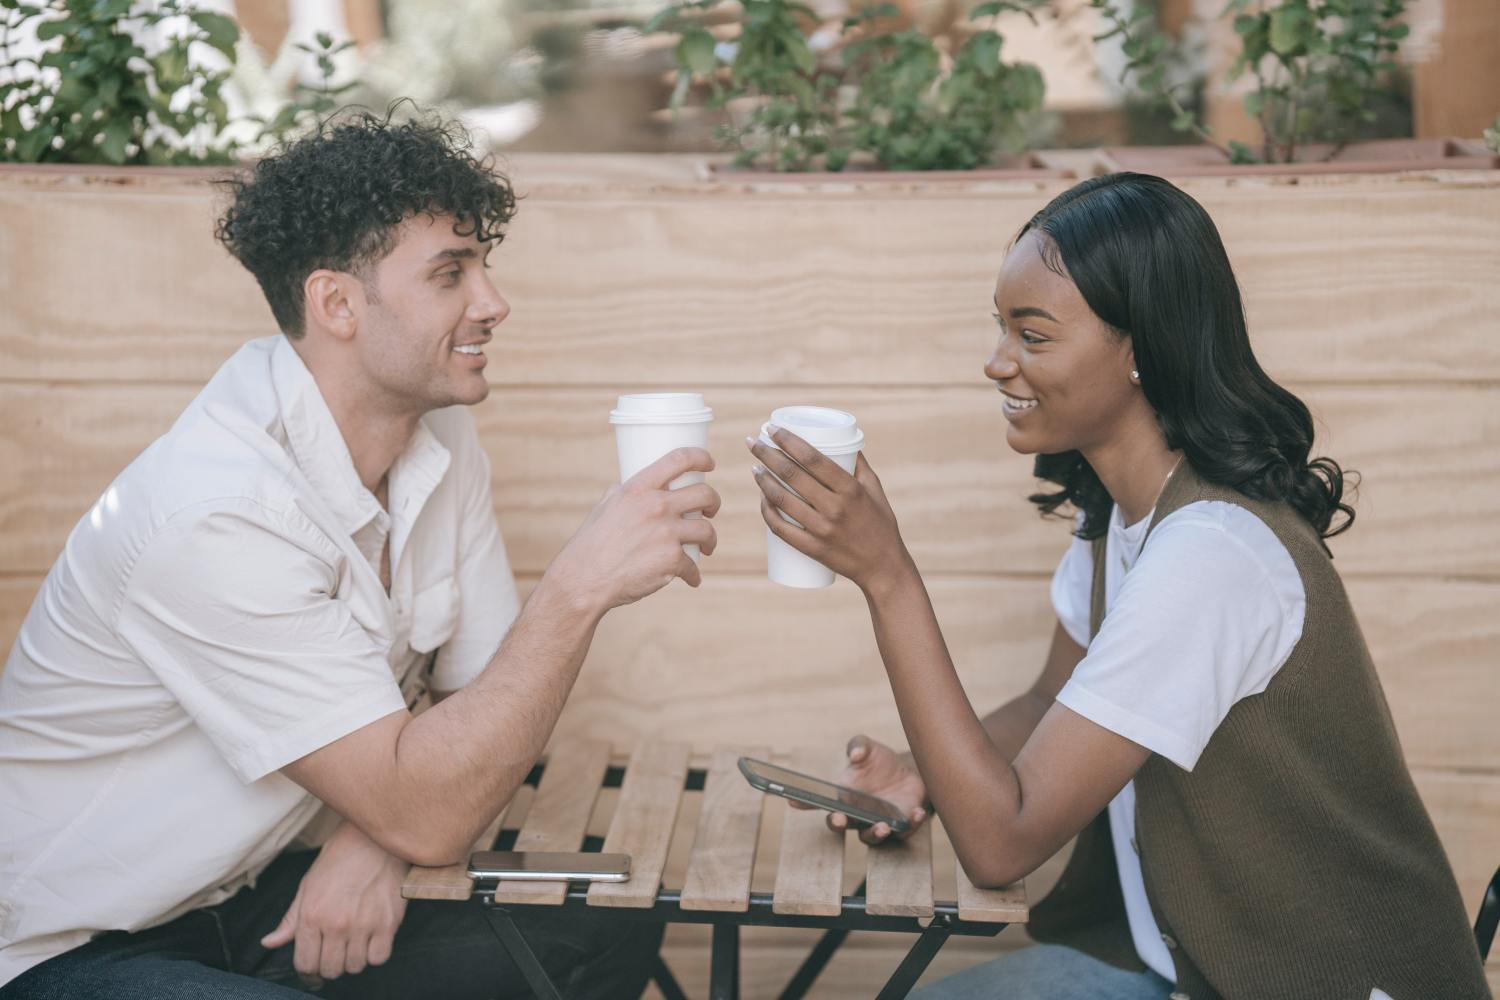 The Top Reasons Why Mature Women Have Successful Relationships: 15 Steps To Live By For A Winning Partnership